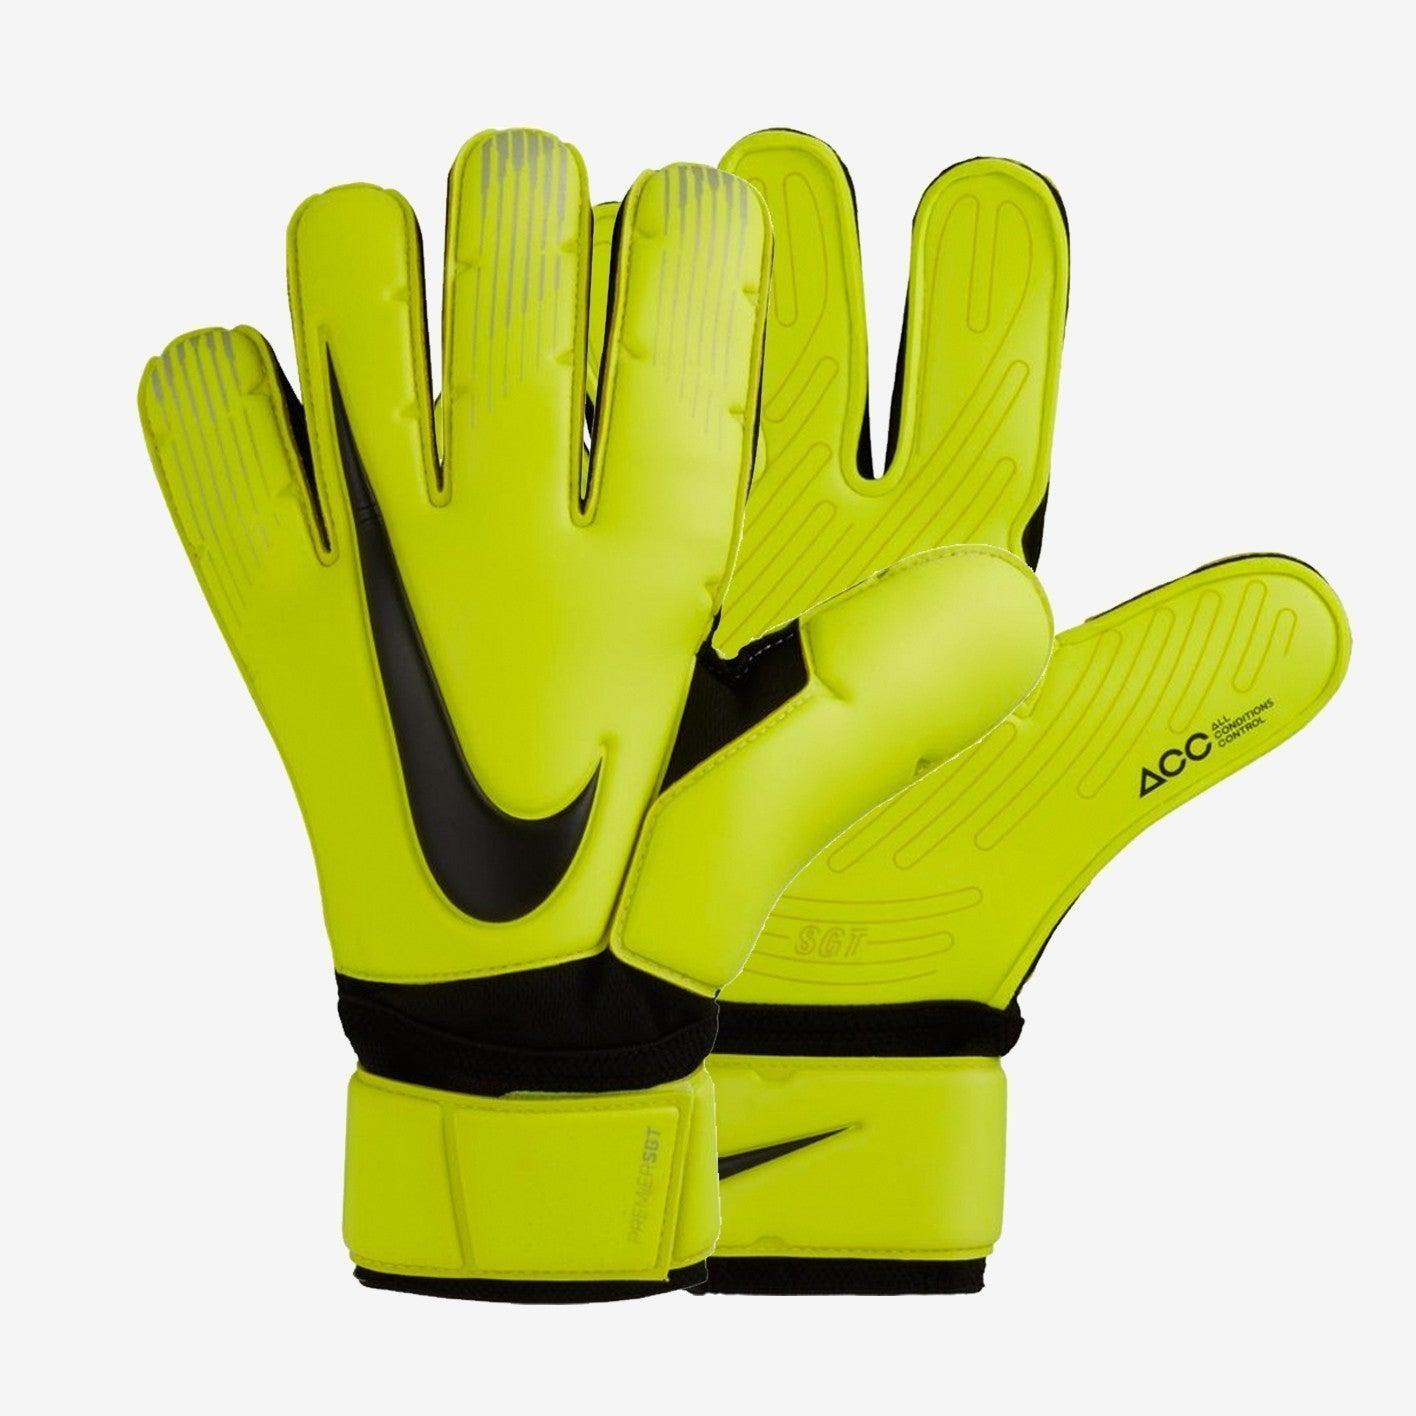 Men's Premier SGT Goalkeeper Gloves - Volt/Black